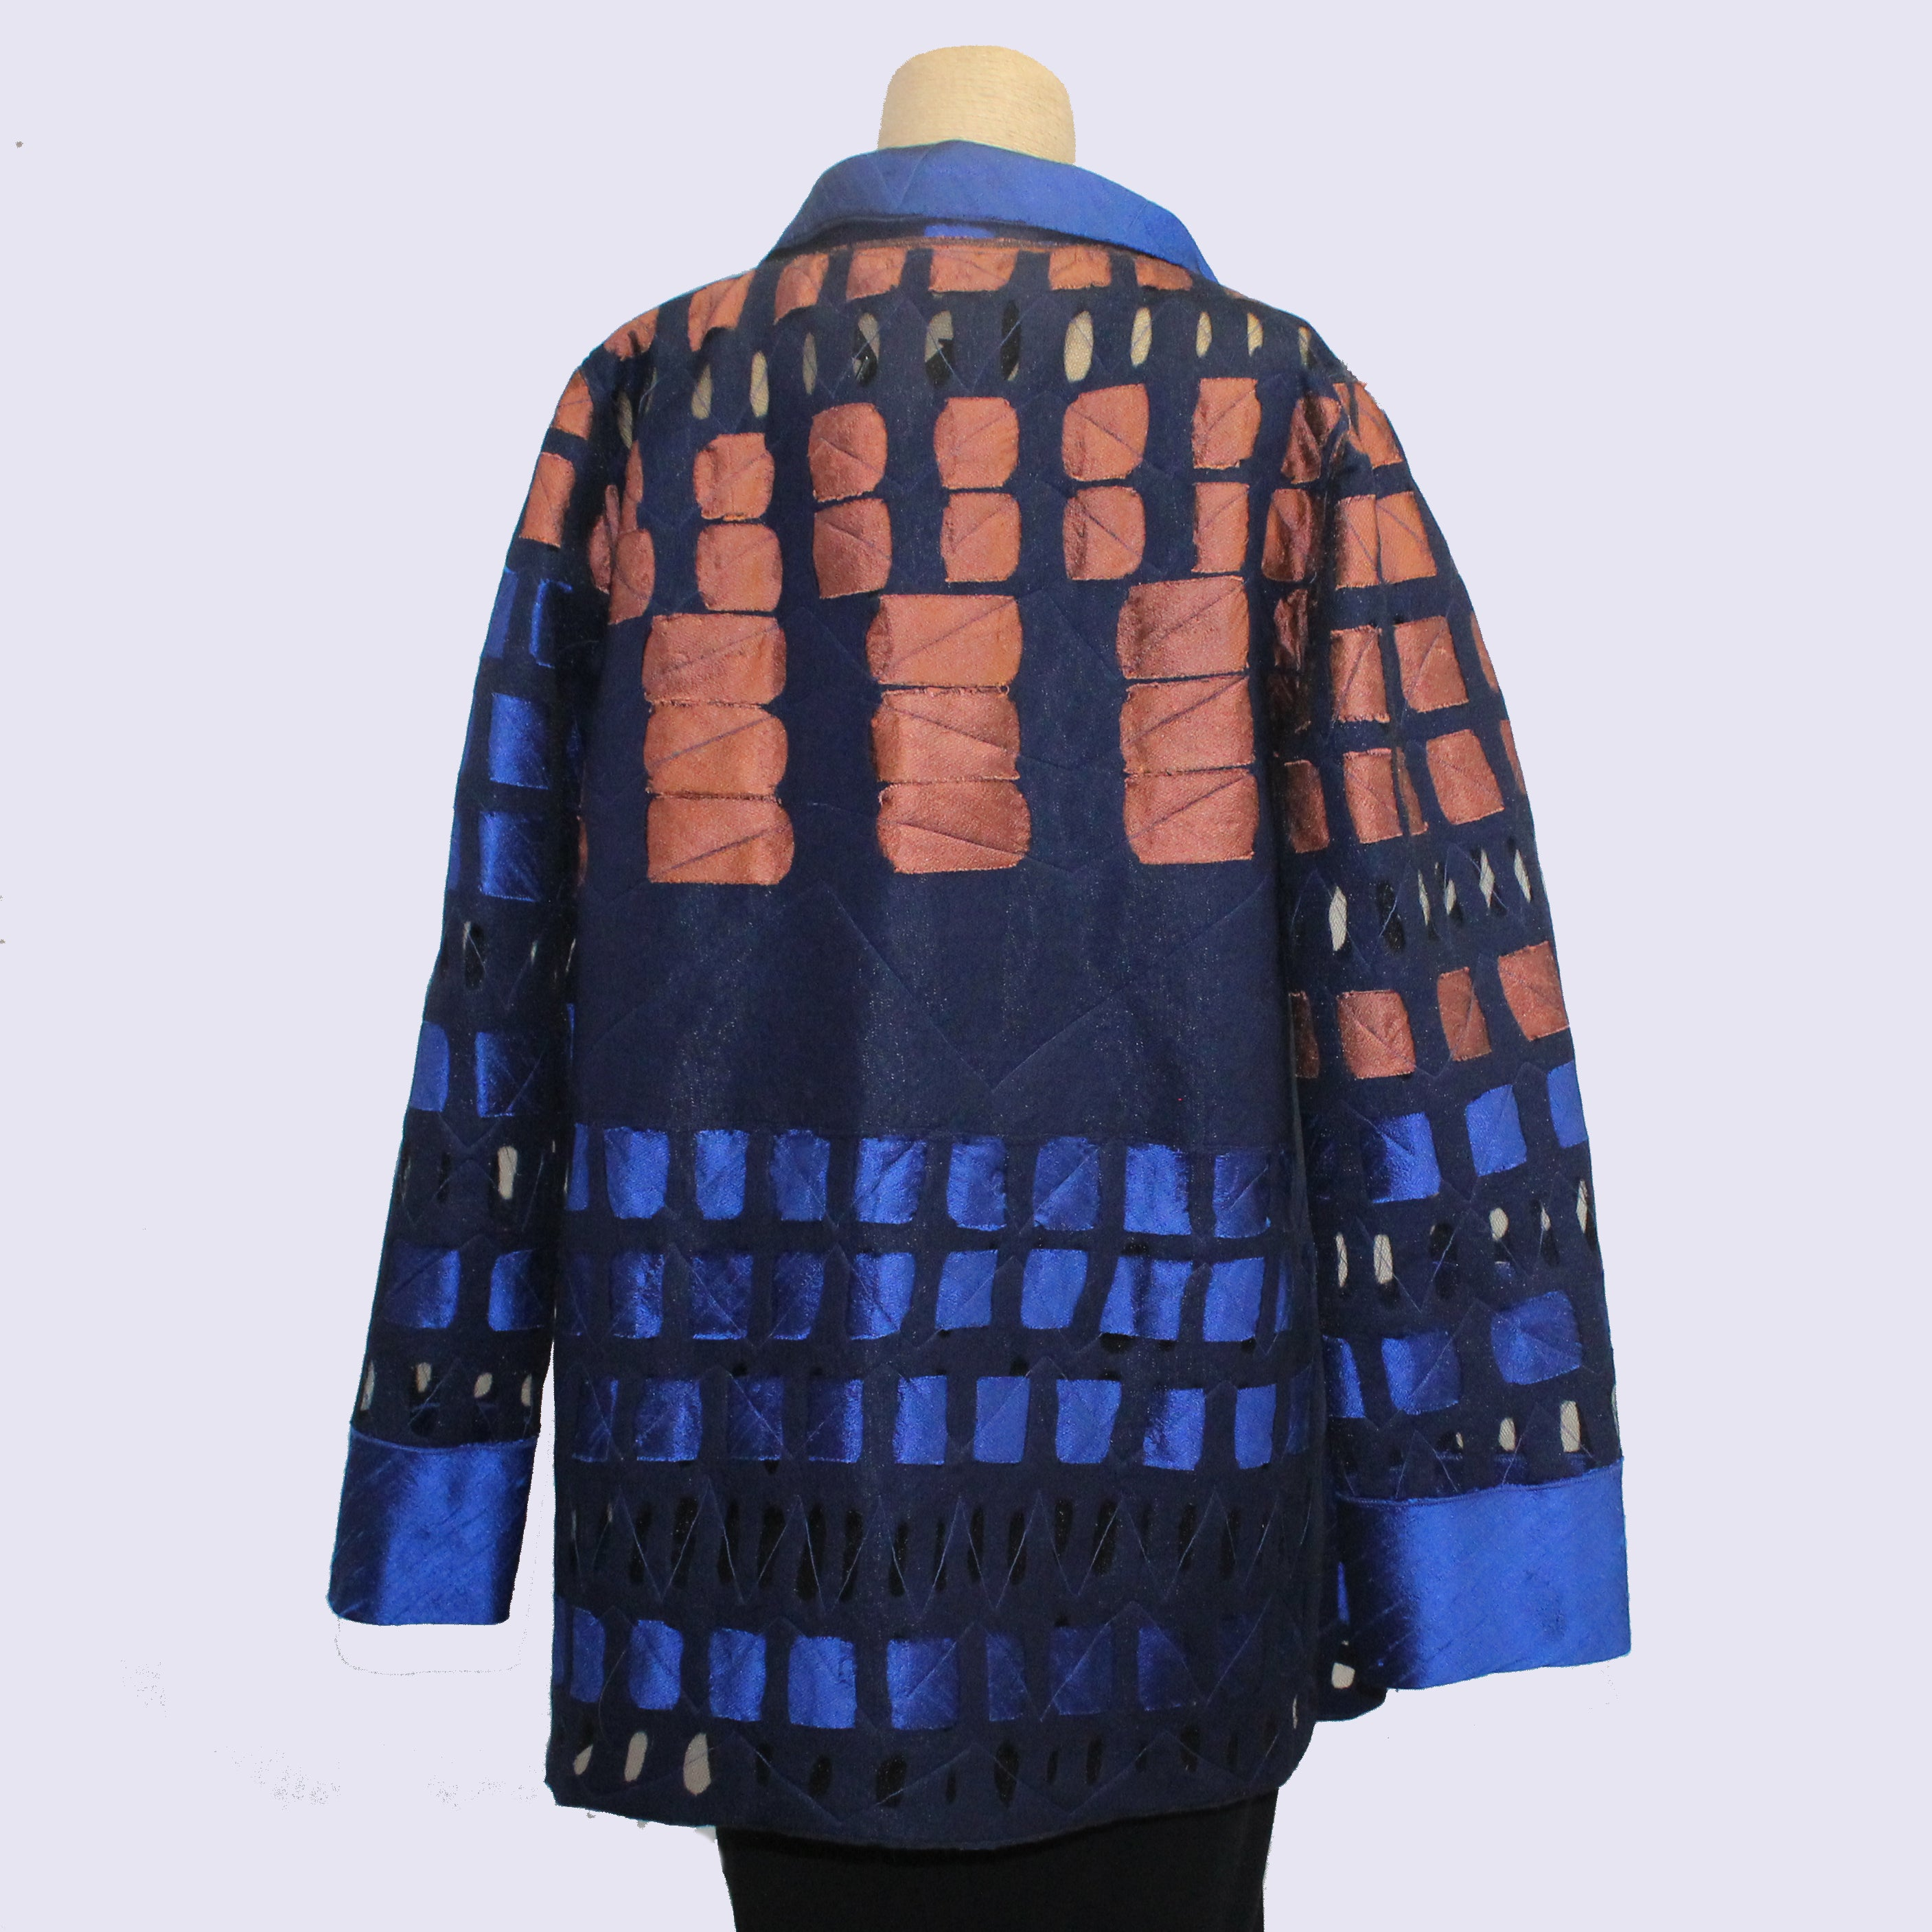 Maggy Pavlou Jacket, Blue/Copper/Navy, M